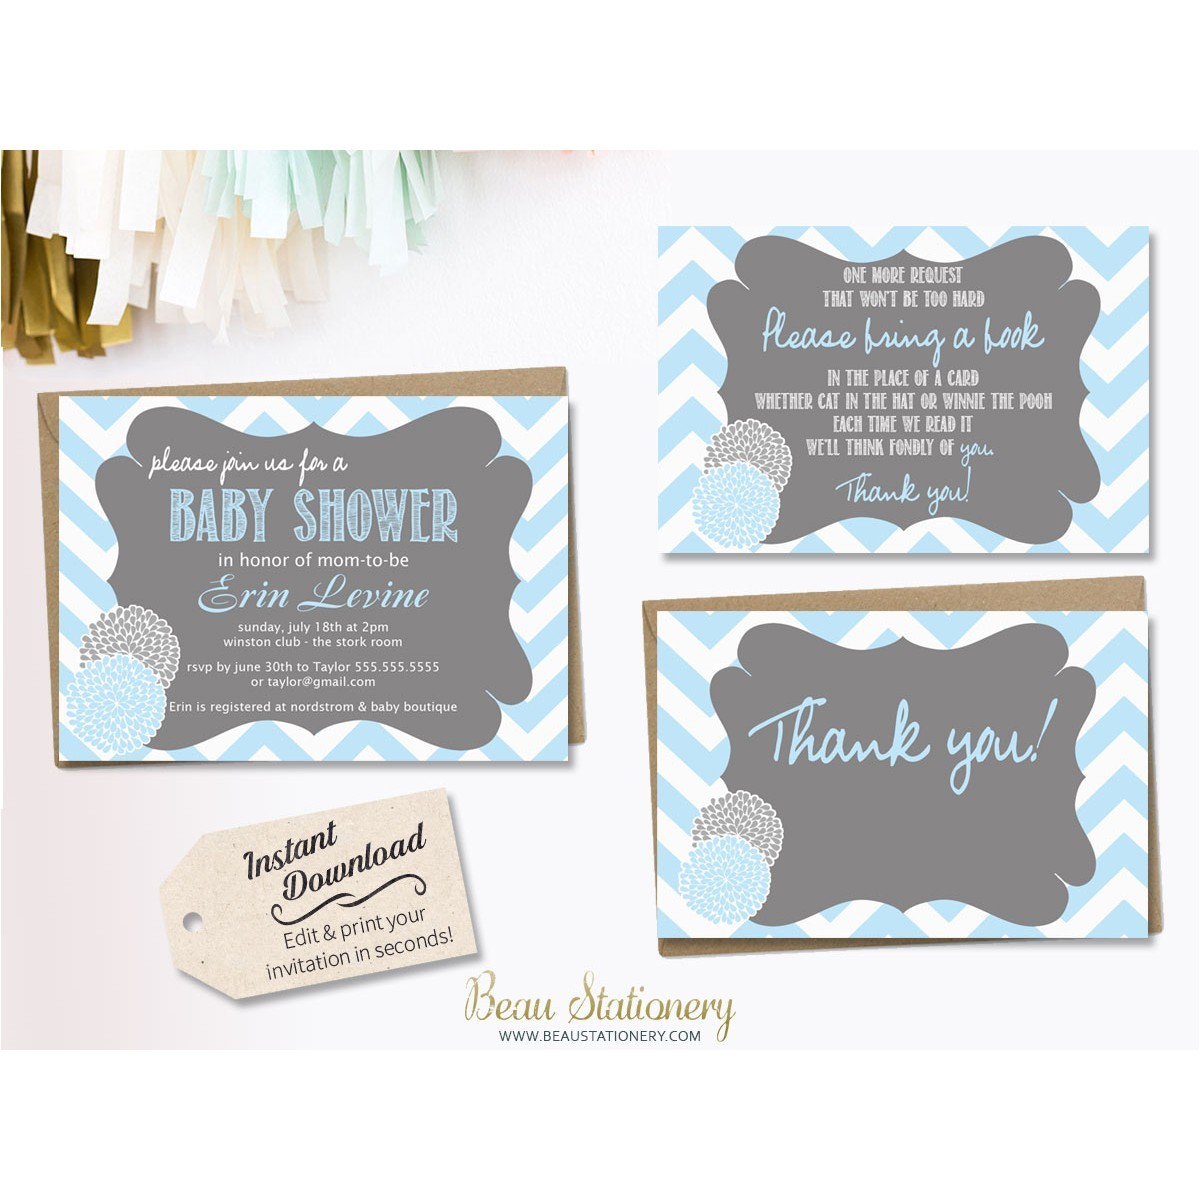 cards ideas with diy baby shower invitation kits hd images pictu